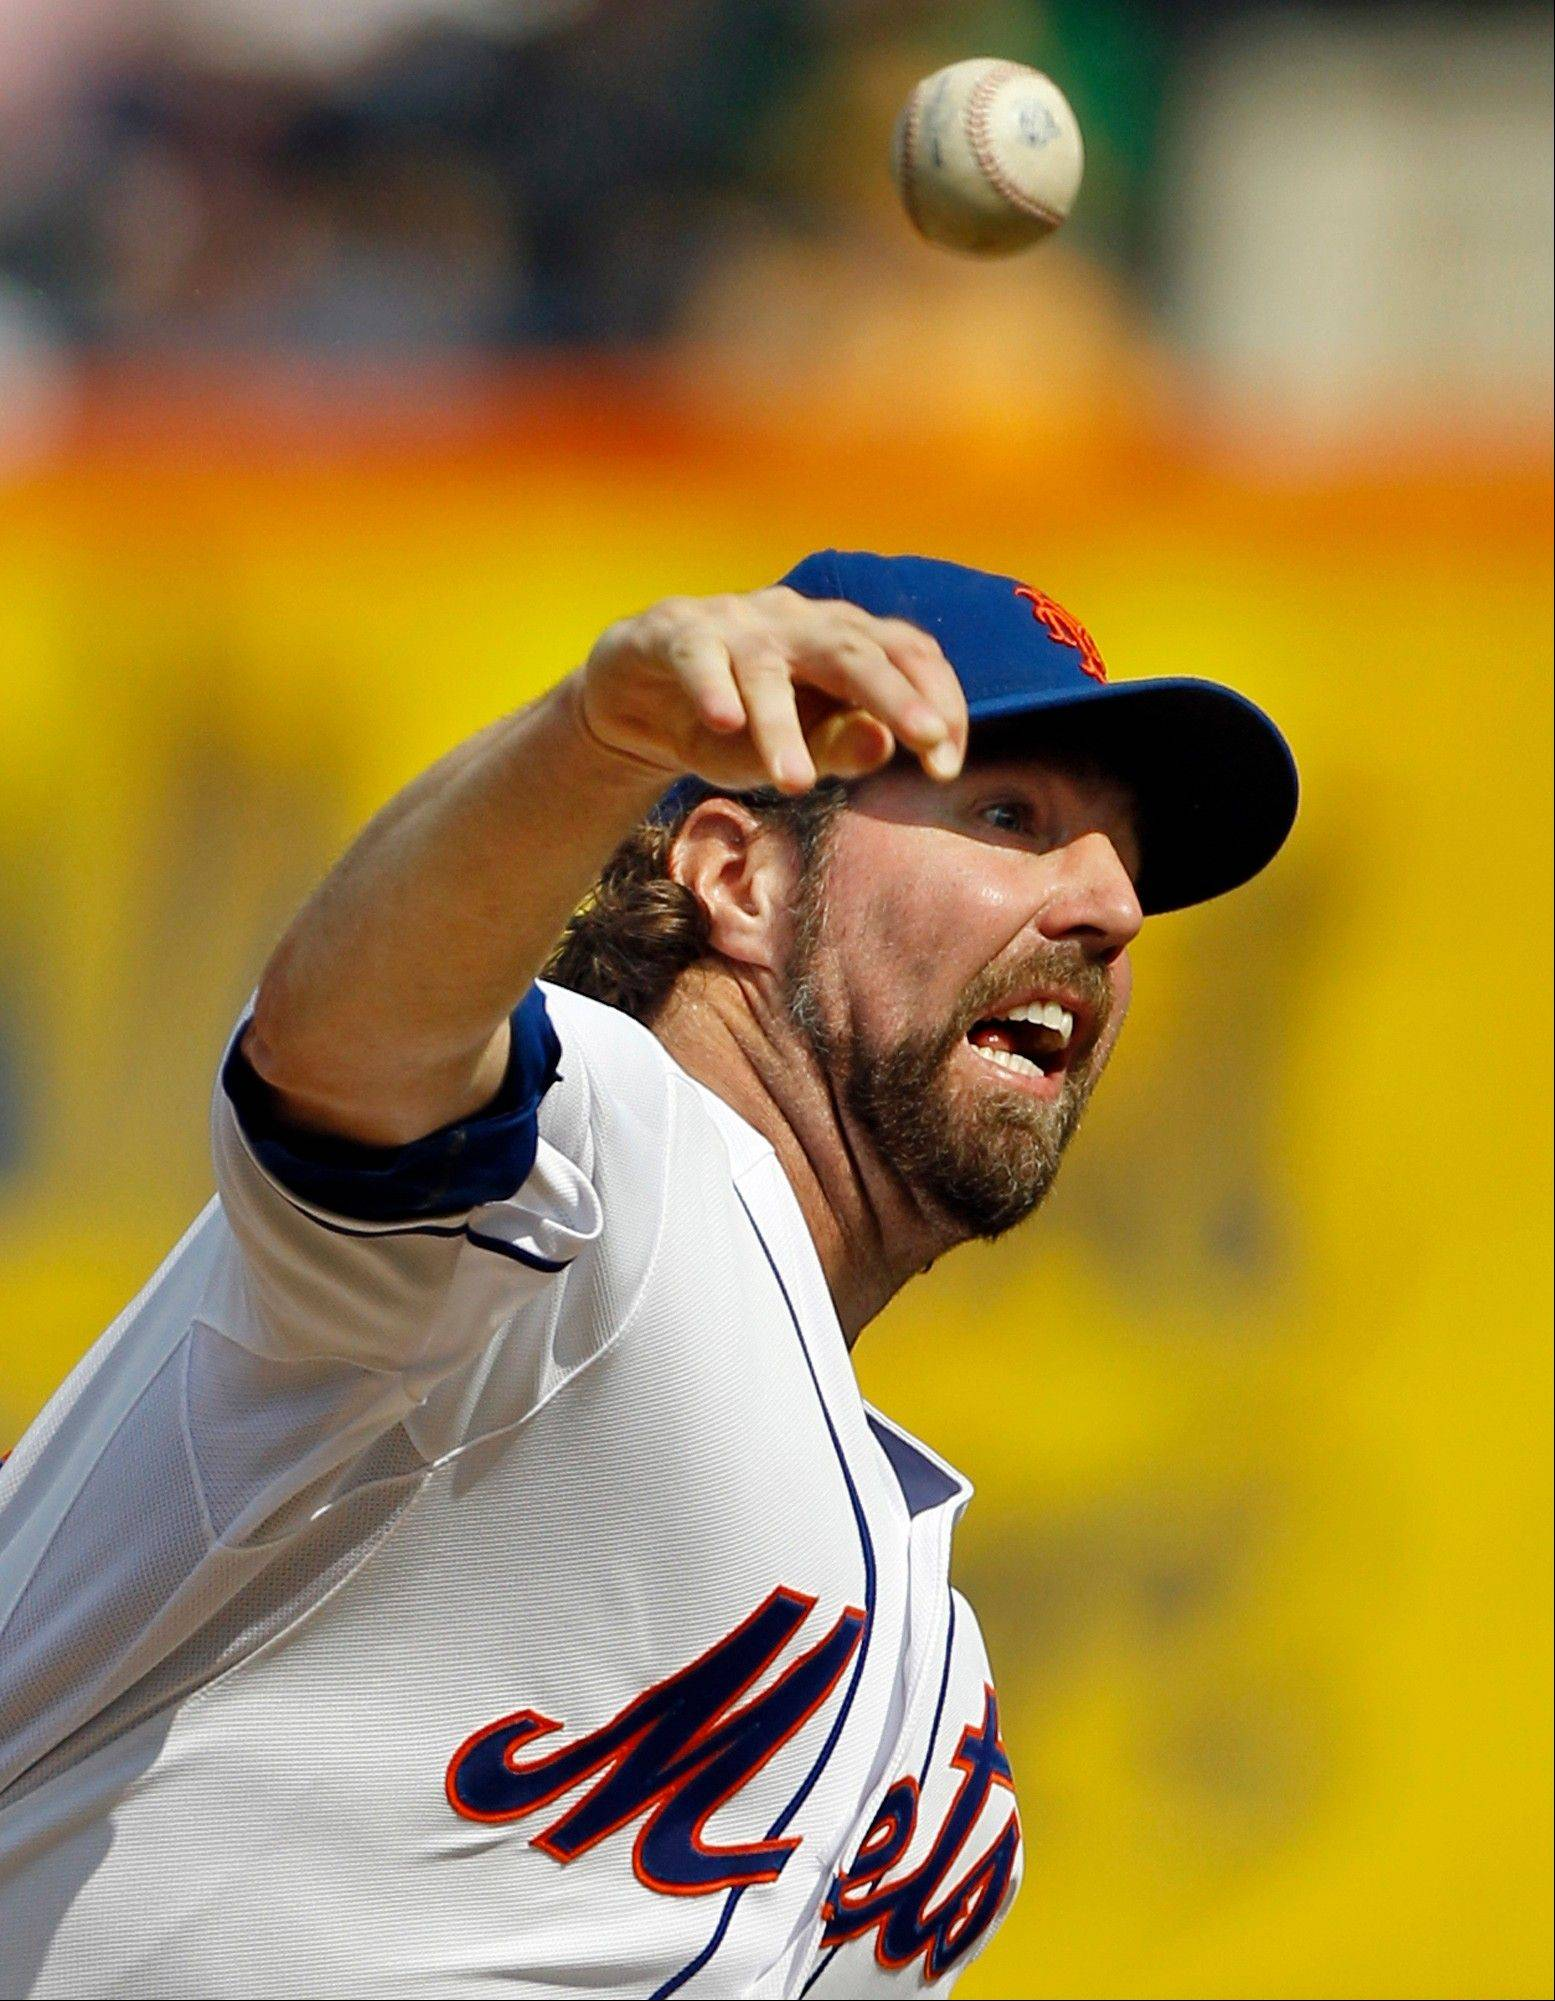 In this Sept. 27, 2012, file photo, New York Mets starting pitcher R.A. Dickey delivers against the Pittsburgh Pirates during the first inning of a baseball game at Citi Field in New York. Dickey and Mets general manager Sandy Alderson can agree on one thing _ they would prefer to have closure before opening day. The Cy Young Award winner can become a free agent after the 2013 season and says he won't negotiate once it starts, so the Mets probably have to sign him to an extension or trade him to get the best return.